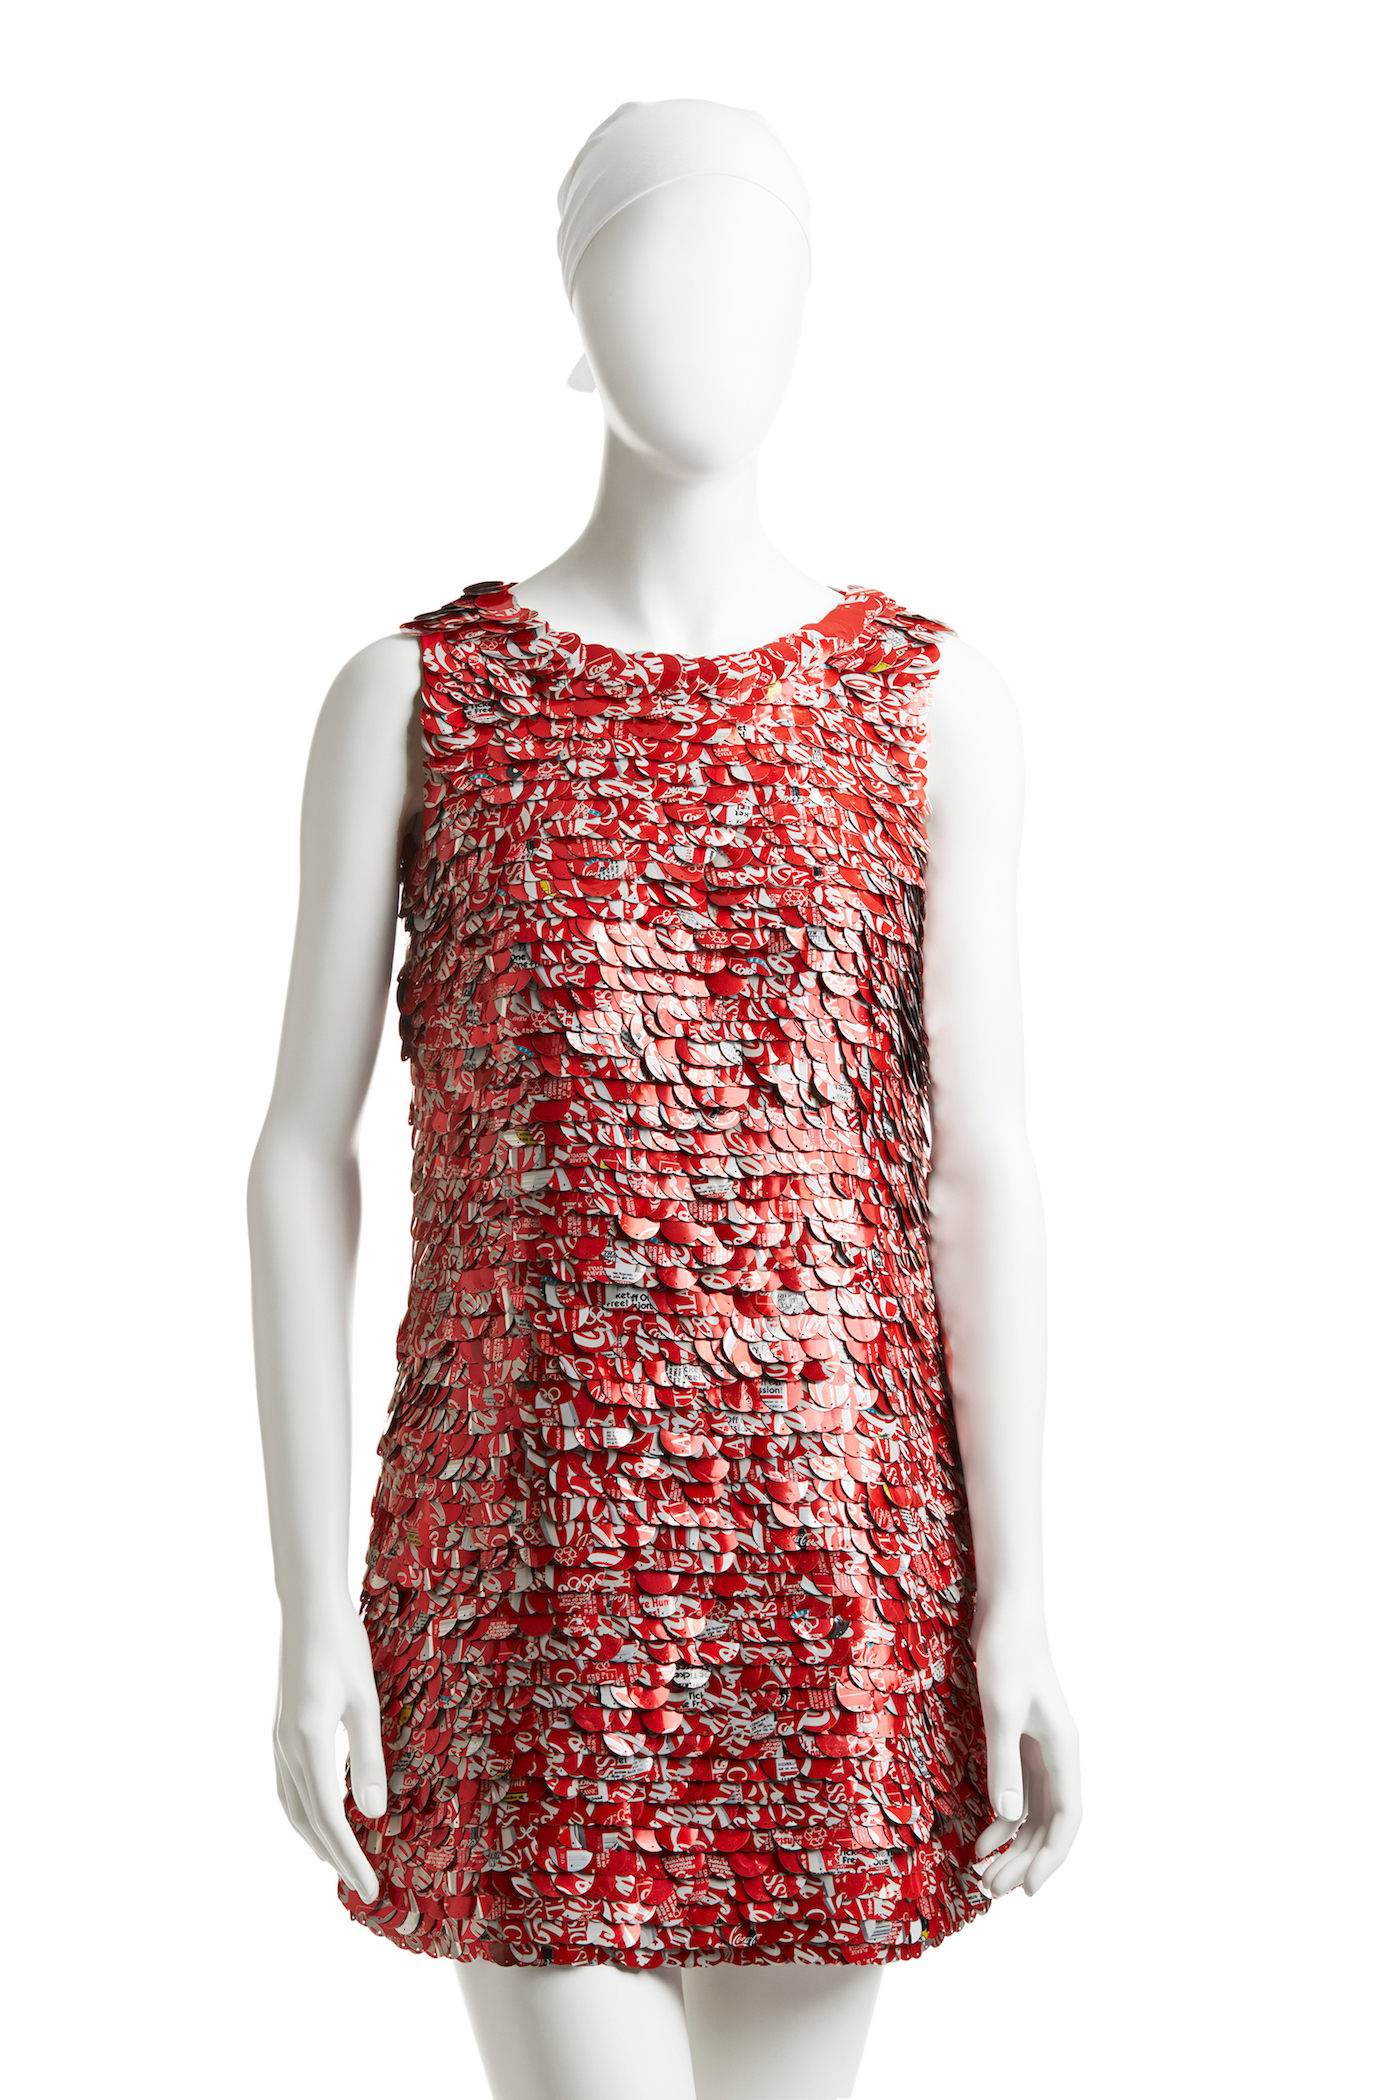 The Real Thing, Coca-Colañcan paillette dress, spring 1994. The Coke can makes an improbable appearance on the runway: Mizrahi used an elaborate process to create these custom paillettes from real Coca-Cola cans. He worked with the charity We Can, which employed homeless New Yorkers to collect cans to recycle; these were shipped to the sequin-maker Langlois-Martin in Paris, where they were cut into paillettes that were then sent to India to be beaded onto dresses. The result is a high-fashion, nearly weightless modern take on a ubiquitous American icon.